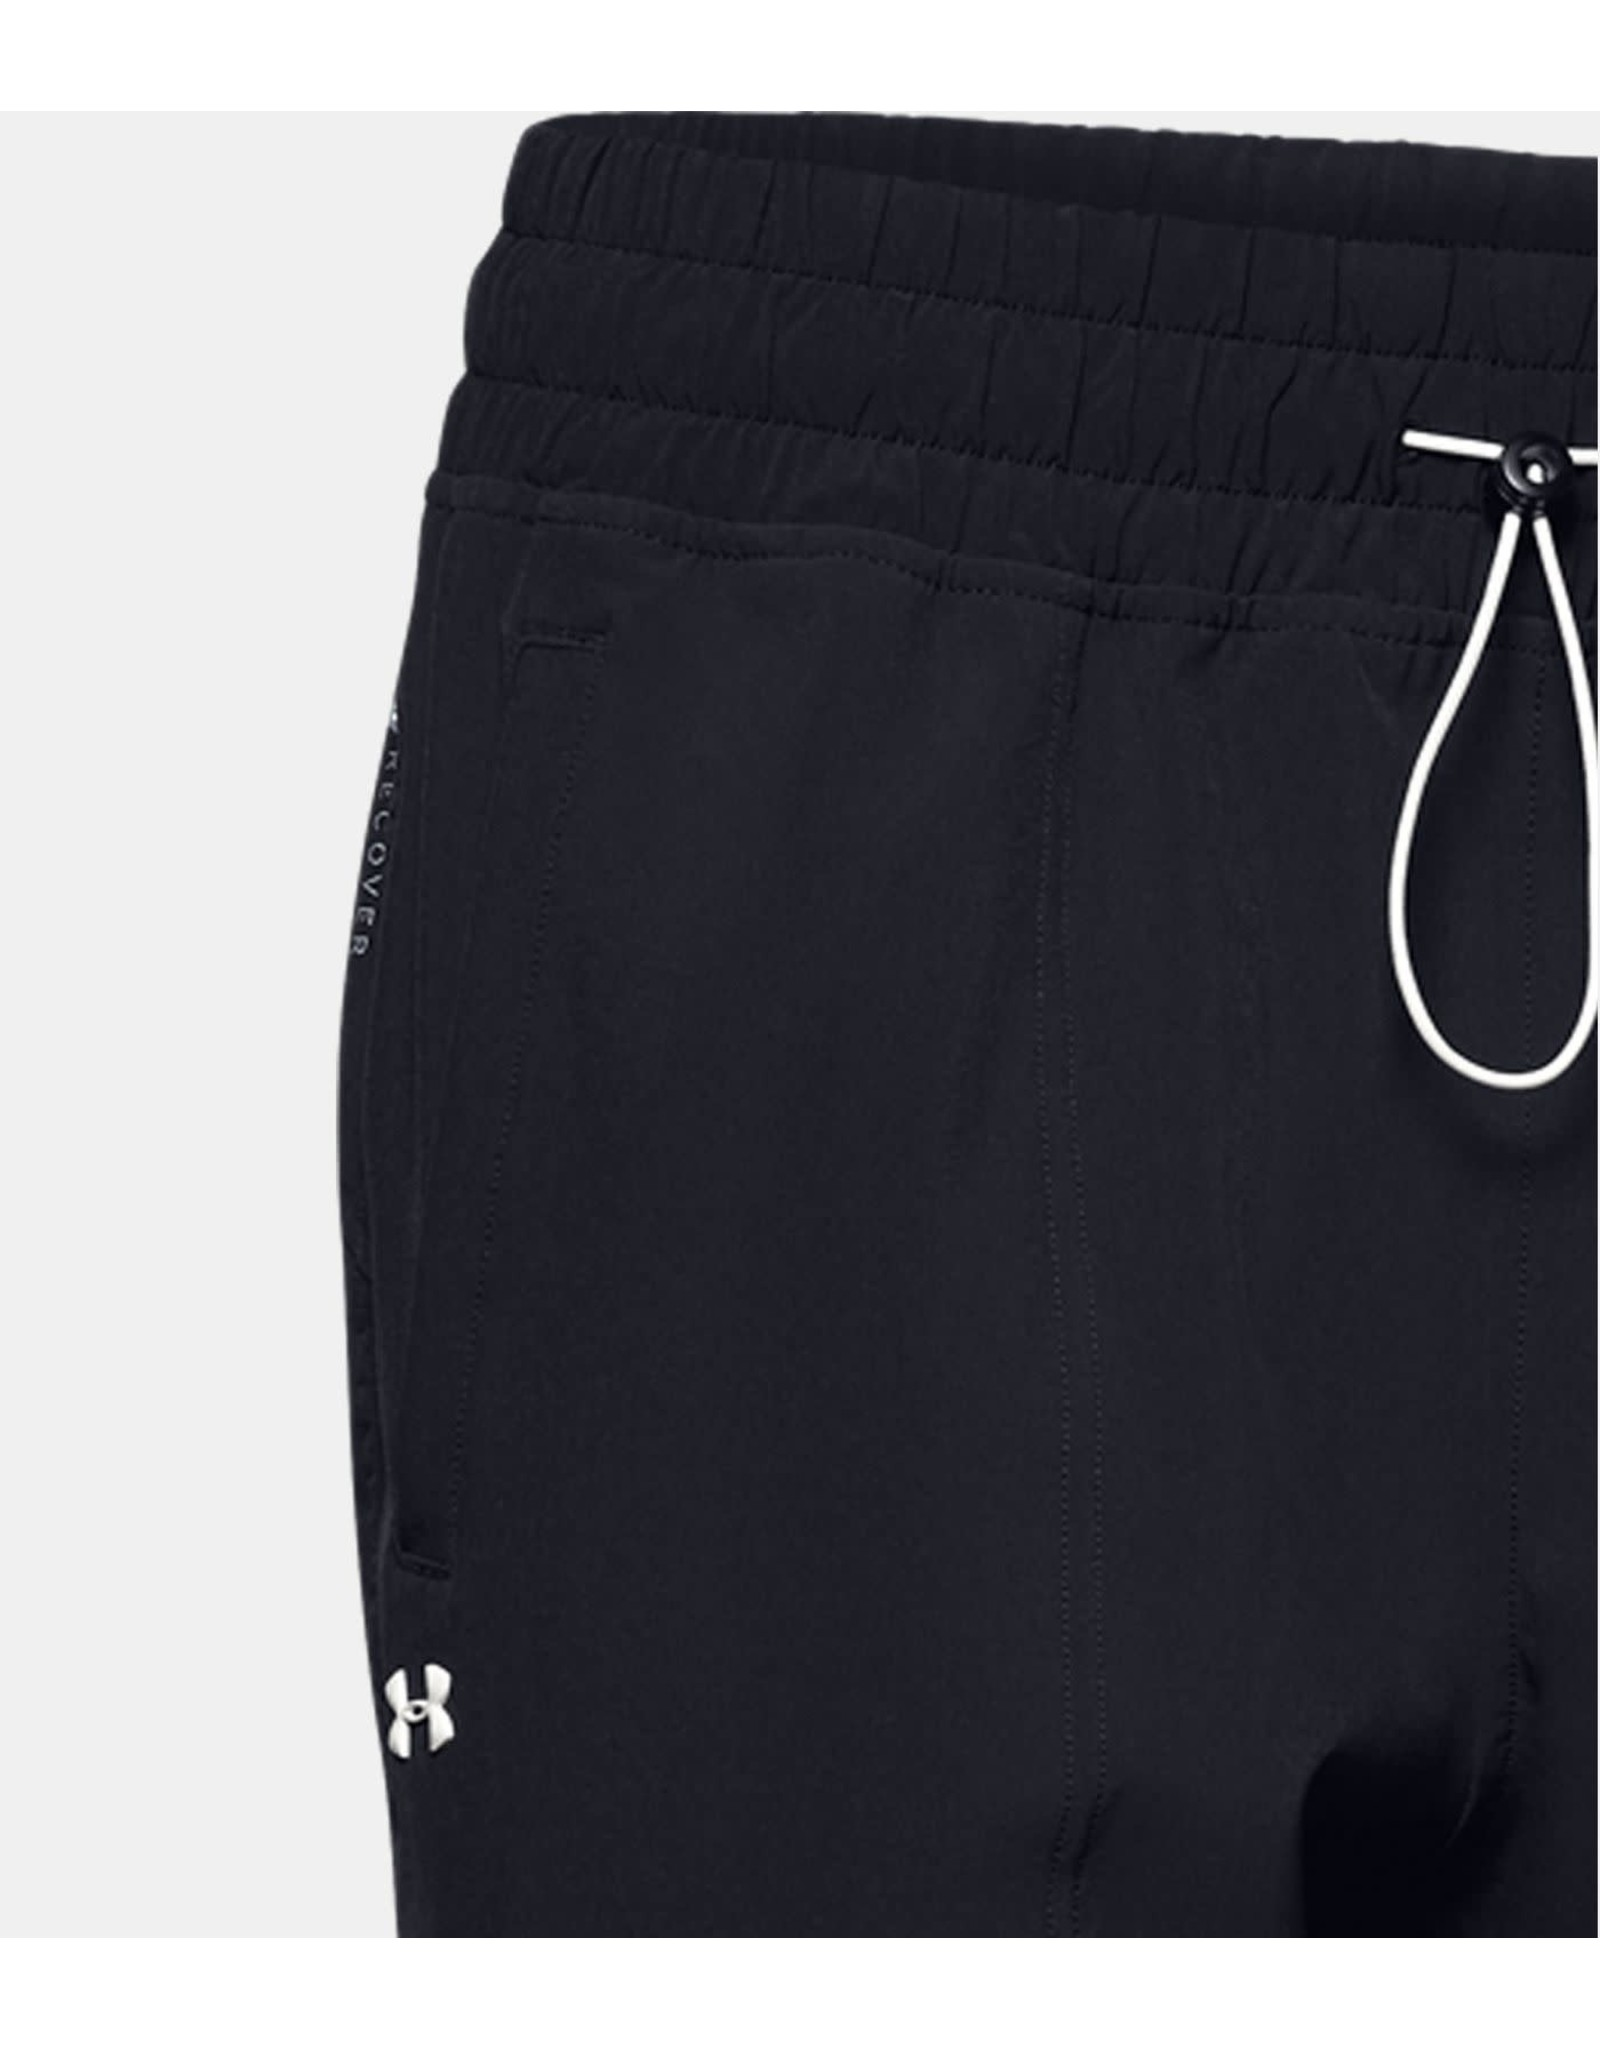 Under Armour Recover woven pants - black